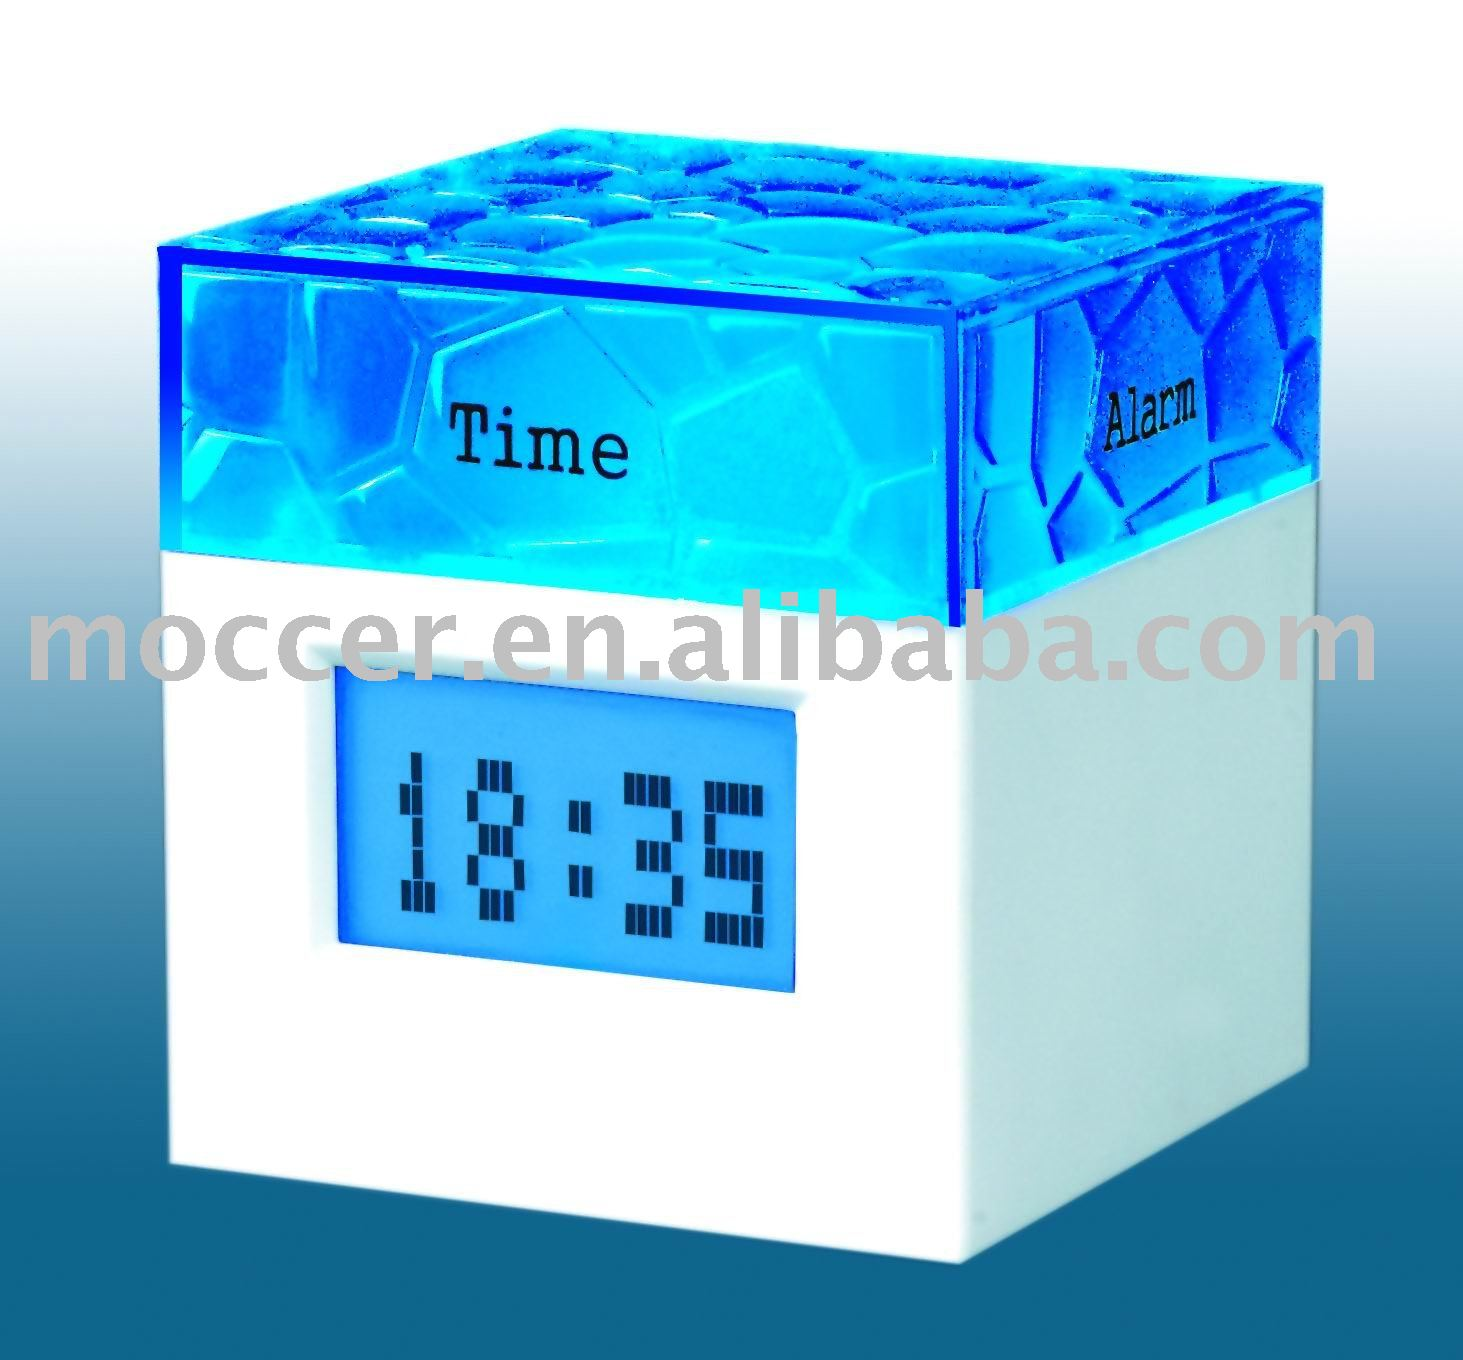 Rotation clock,Four sides clock,Quartz table clock